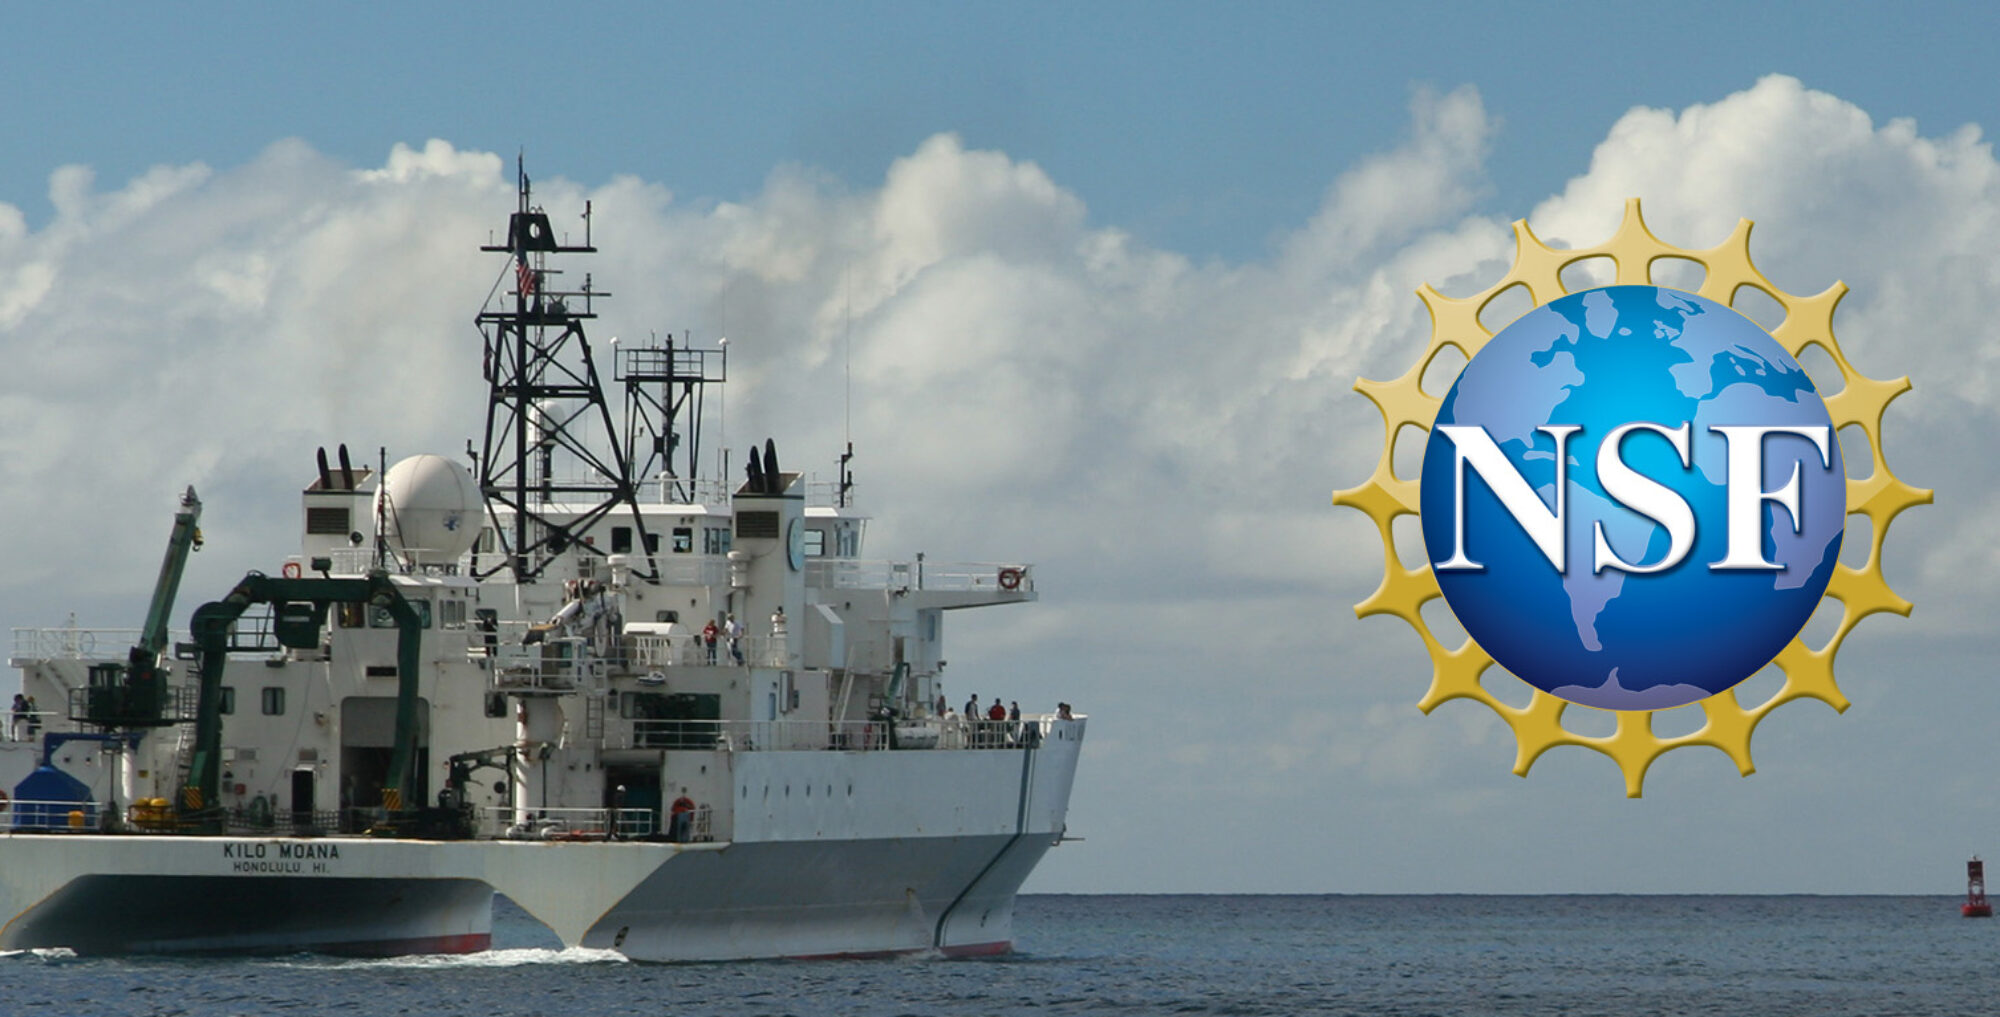 2019 NSF-UNOLS Biological and Chemical Oceanography Chief Scientist Training Cruise